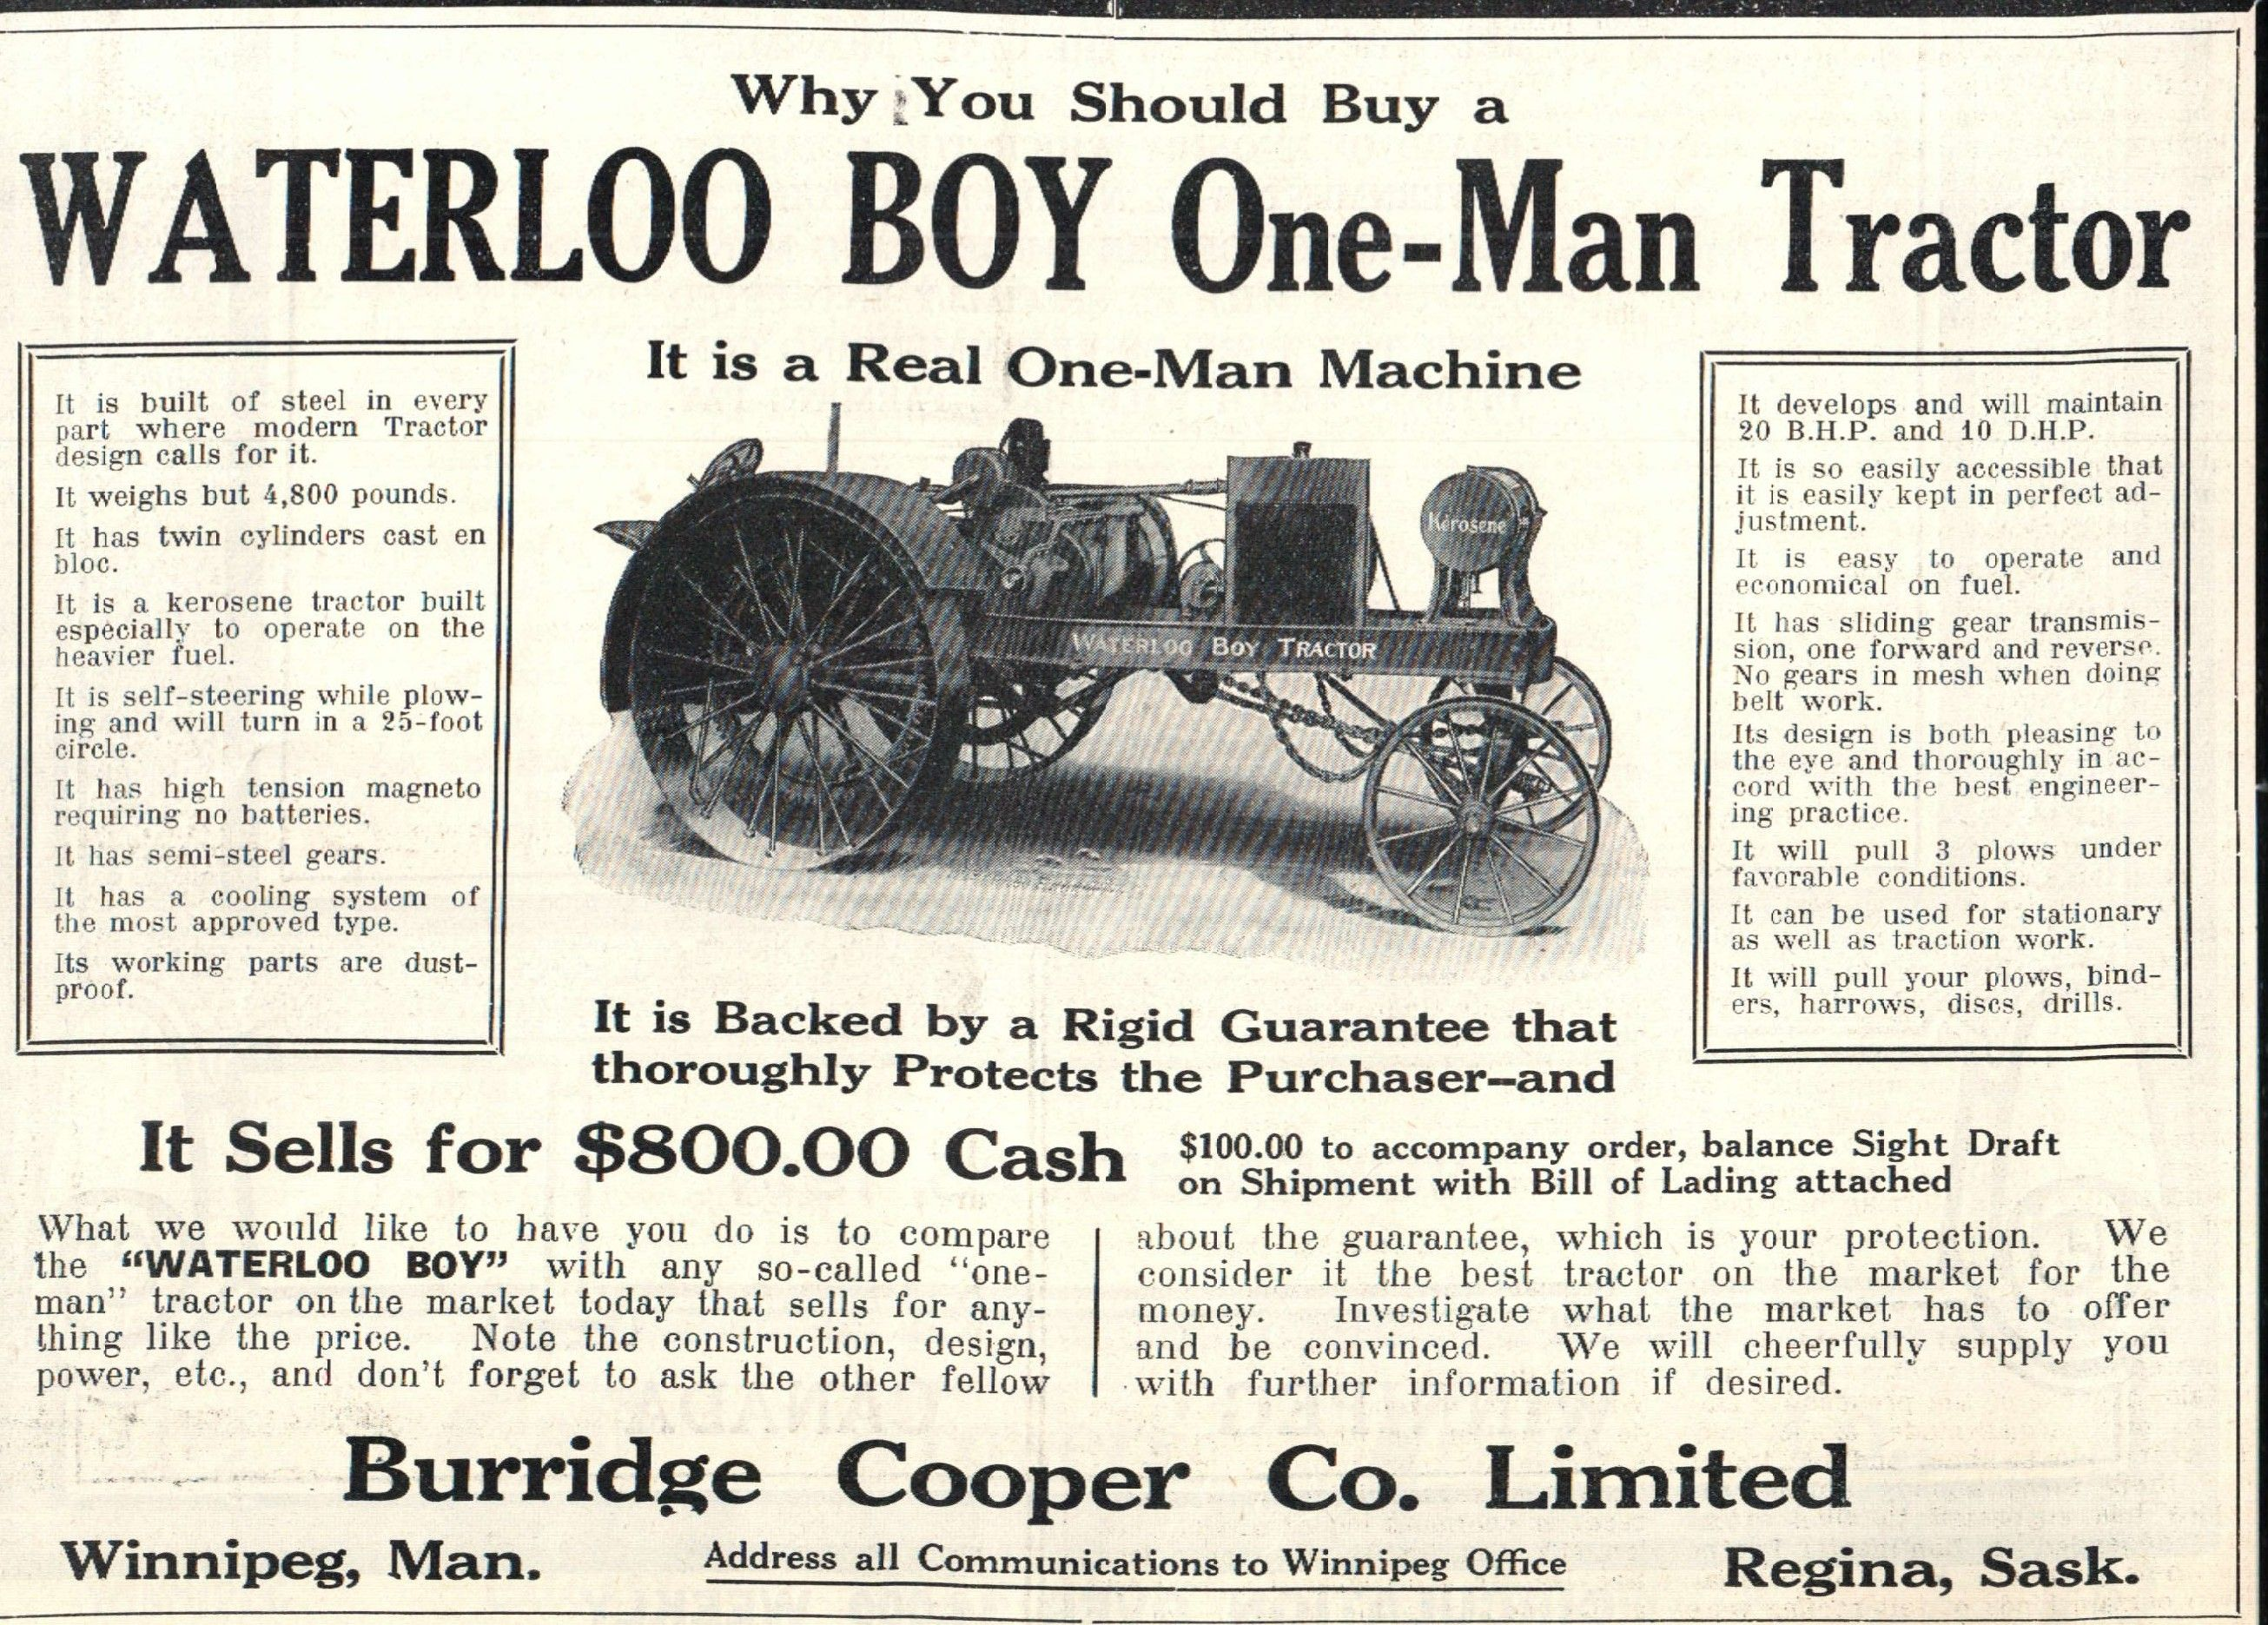 The company manufacturing the Waterloo Boy was purchased by John ...